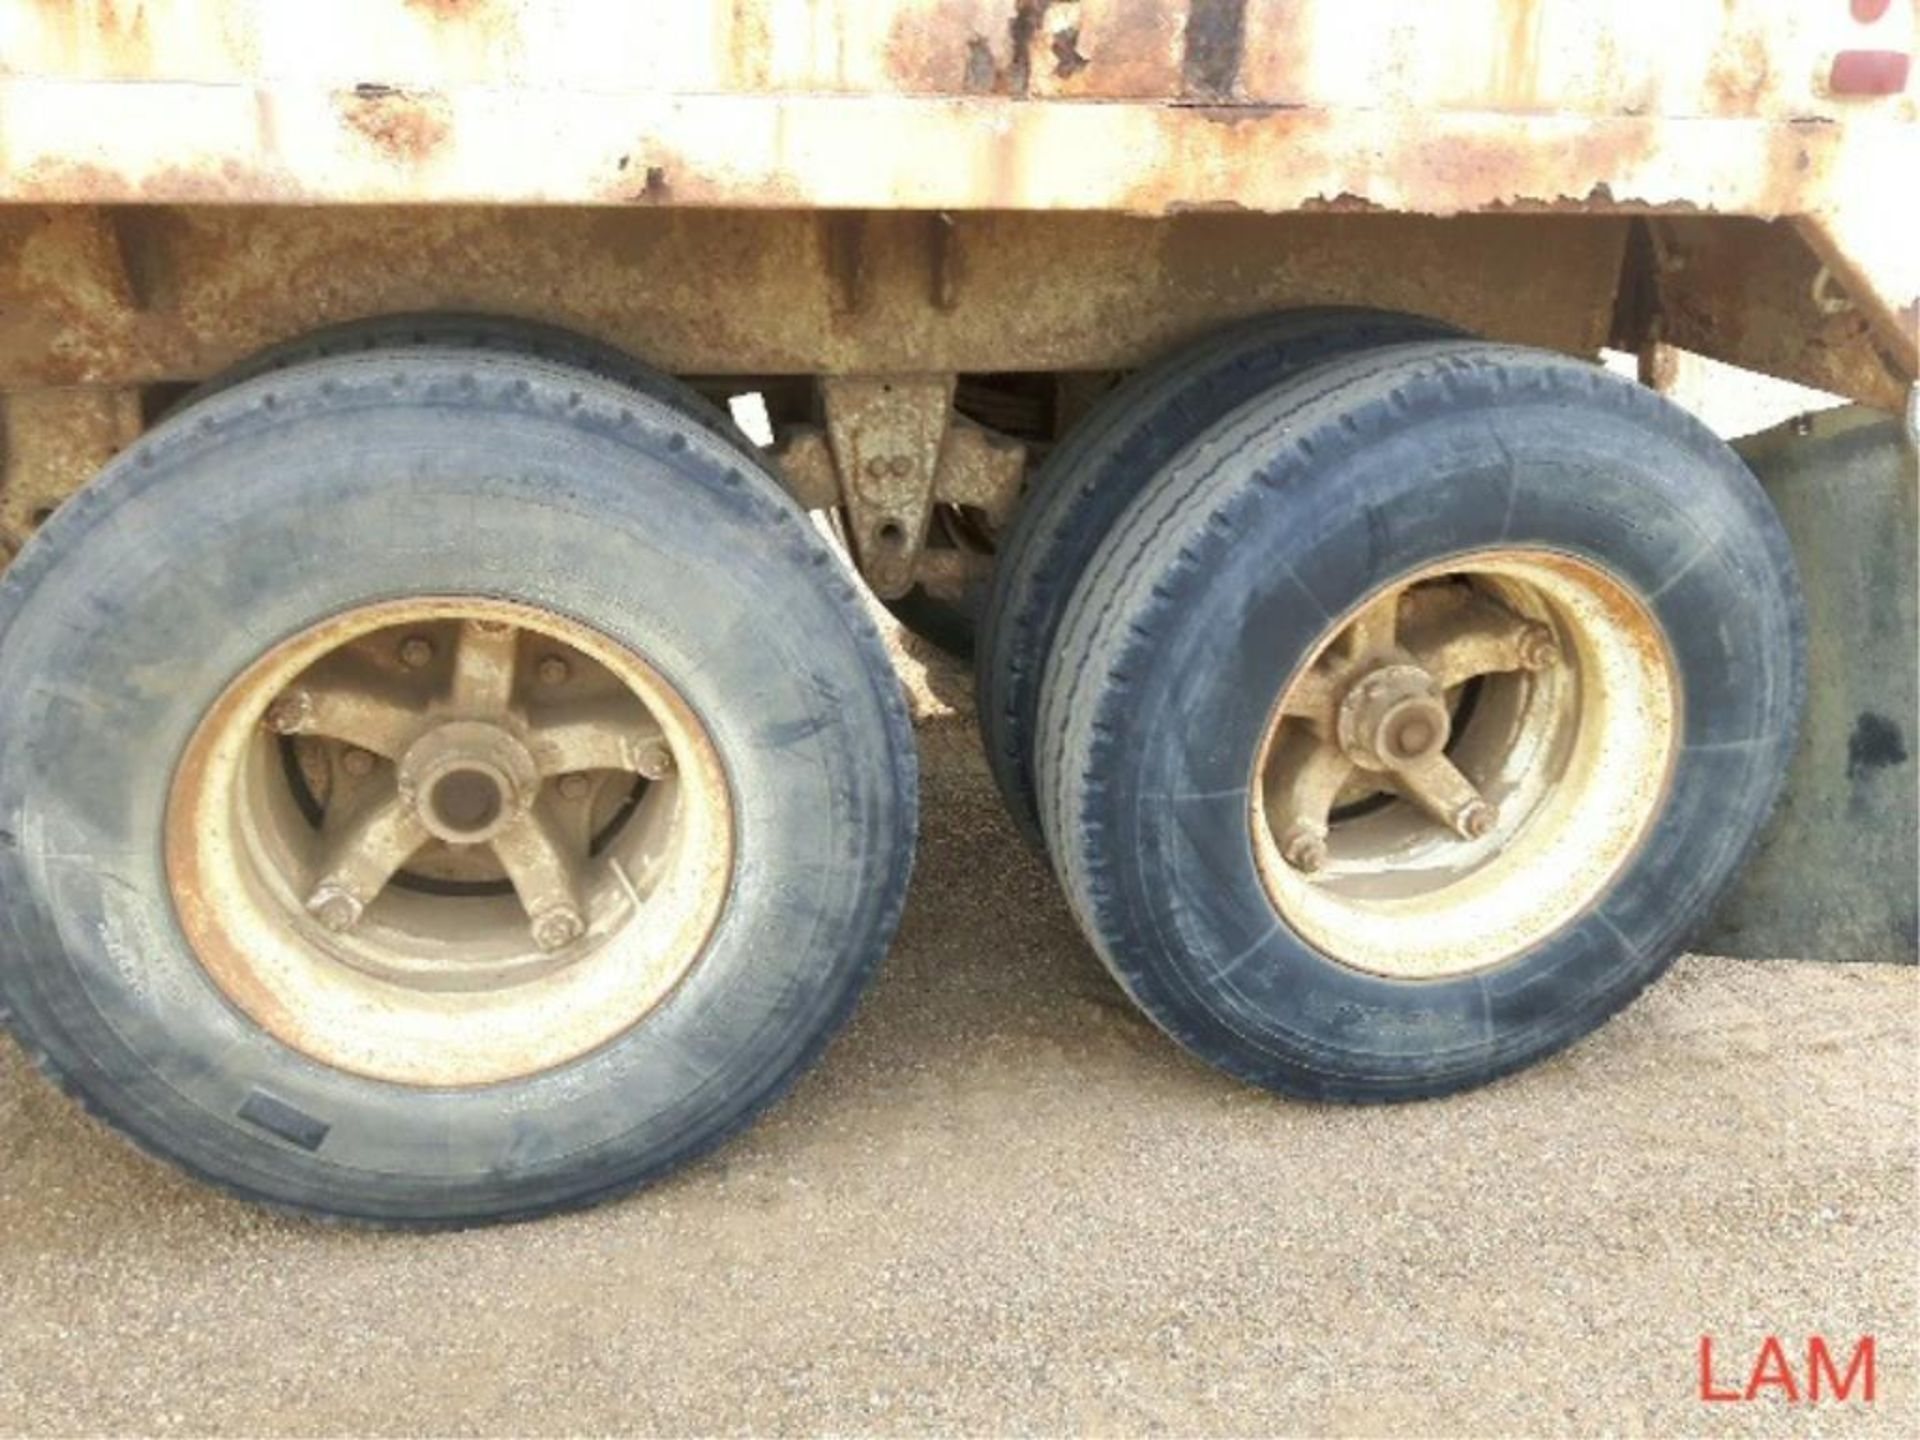 1981 Lode T/A Grain Trailer sn HGT380681K123 Lot # ,& Selling on choice - Image 4 of 9